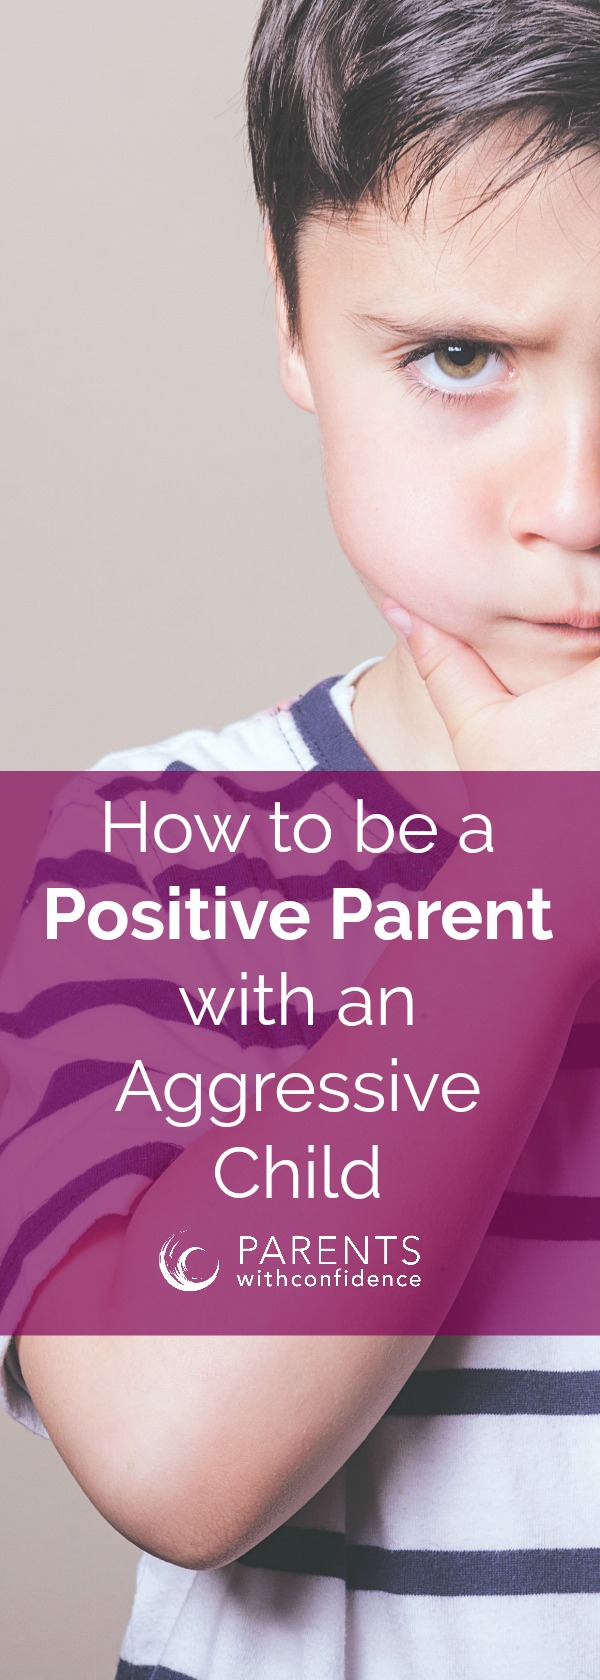 parenting an aggressive child